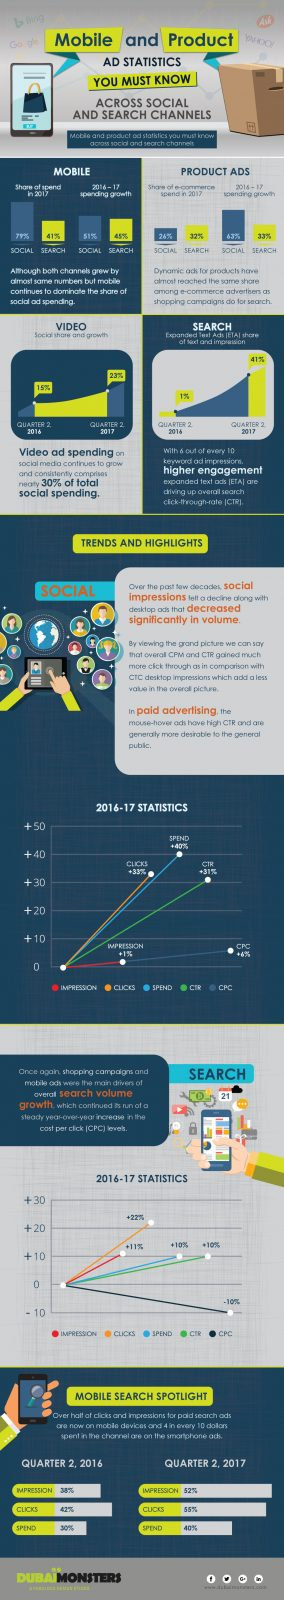 Mobile-and-Product-Ads-Statistics-you-must-know-across-Social-and-Search-Channels